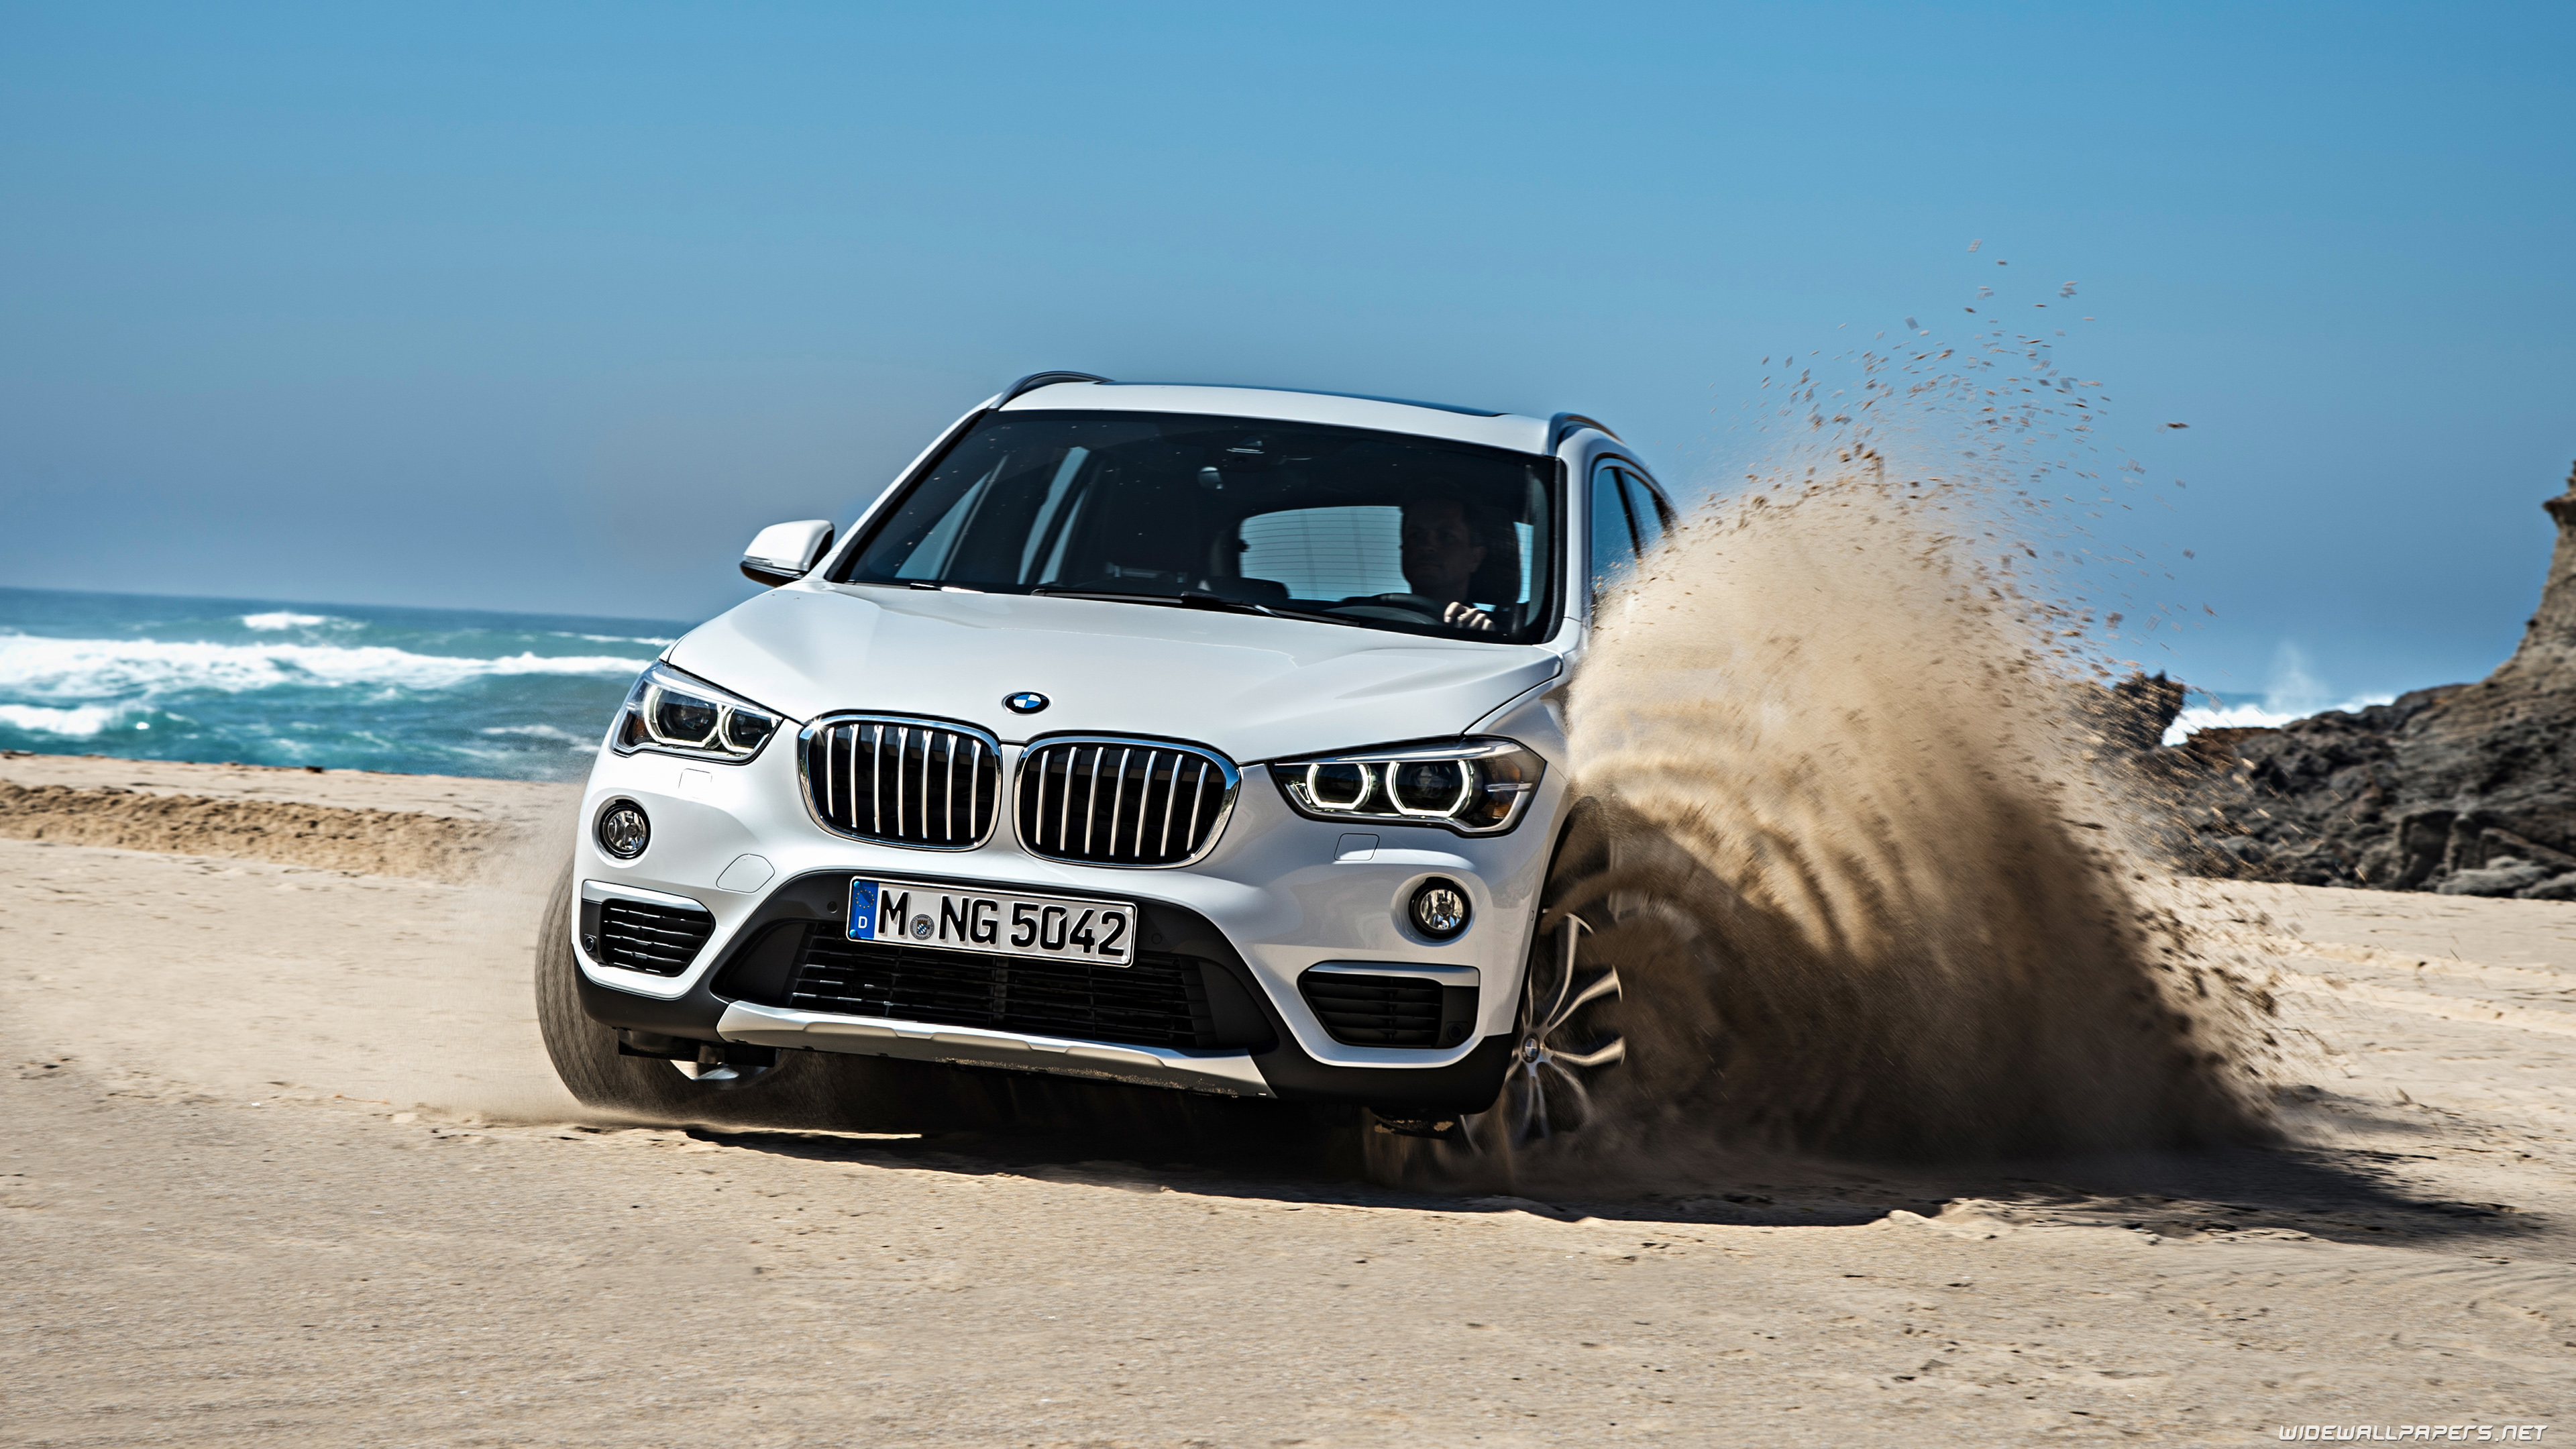 Bmw X1 Cars Desktop Wallpapers 4k Ultra Hd